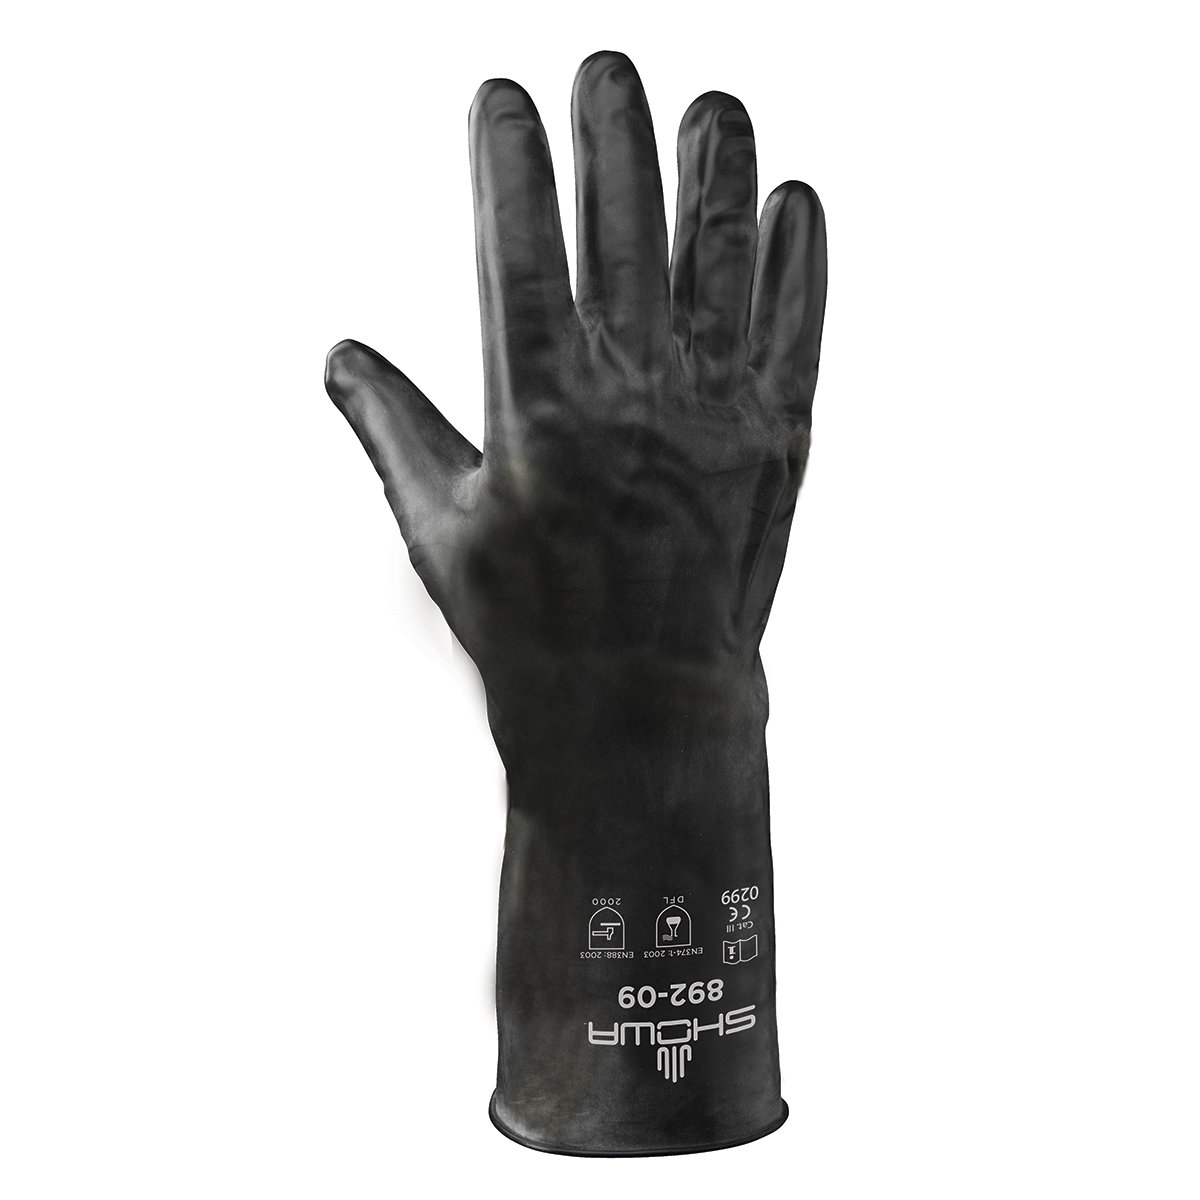 SHOWA 892 Unlined Viton Over Butyl Glove, XX-Large (1 Pair) by SHOWA (Image #1)